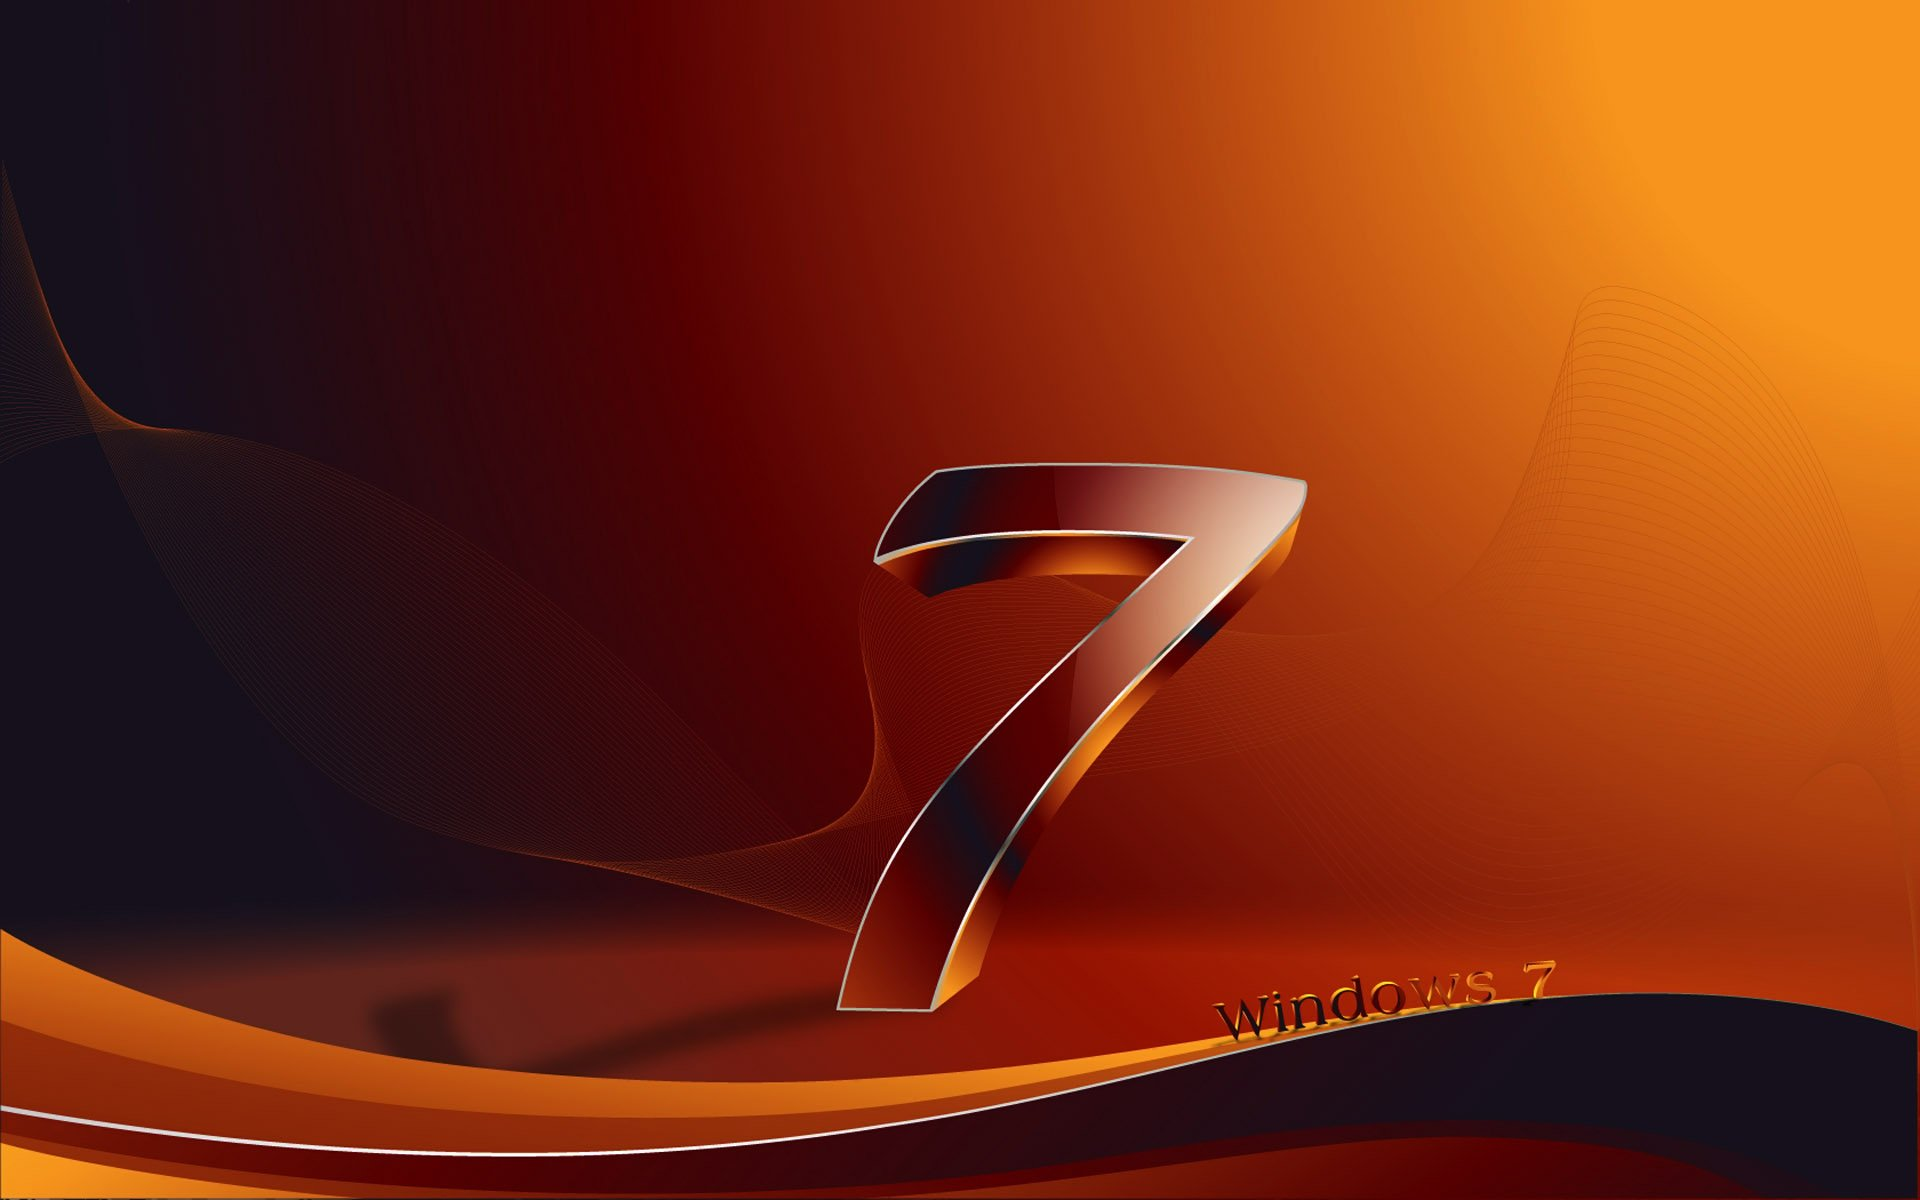 3D Windows 7 Wallpapers HD Wallpapers 1920x1200